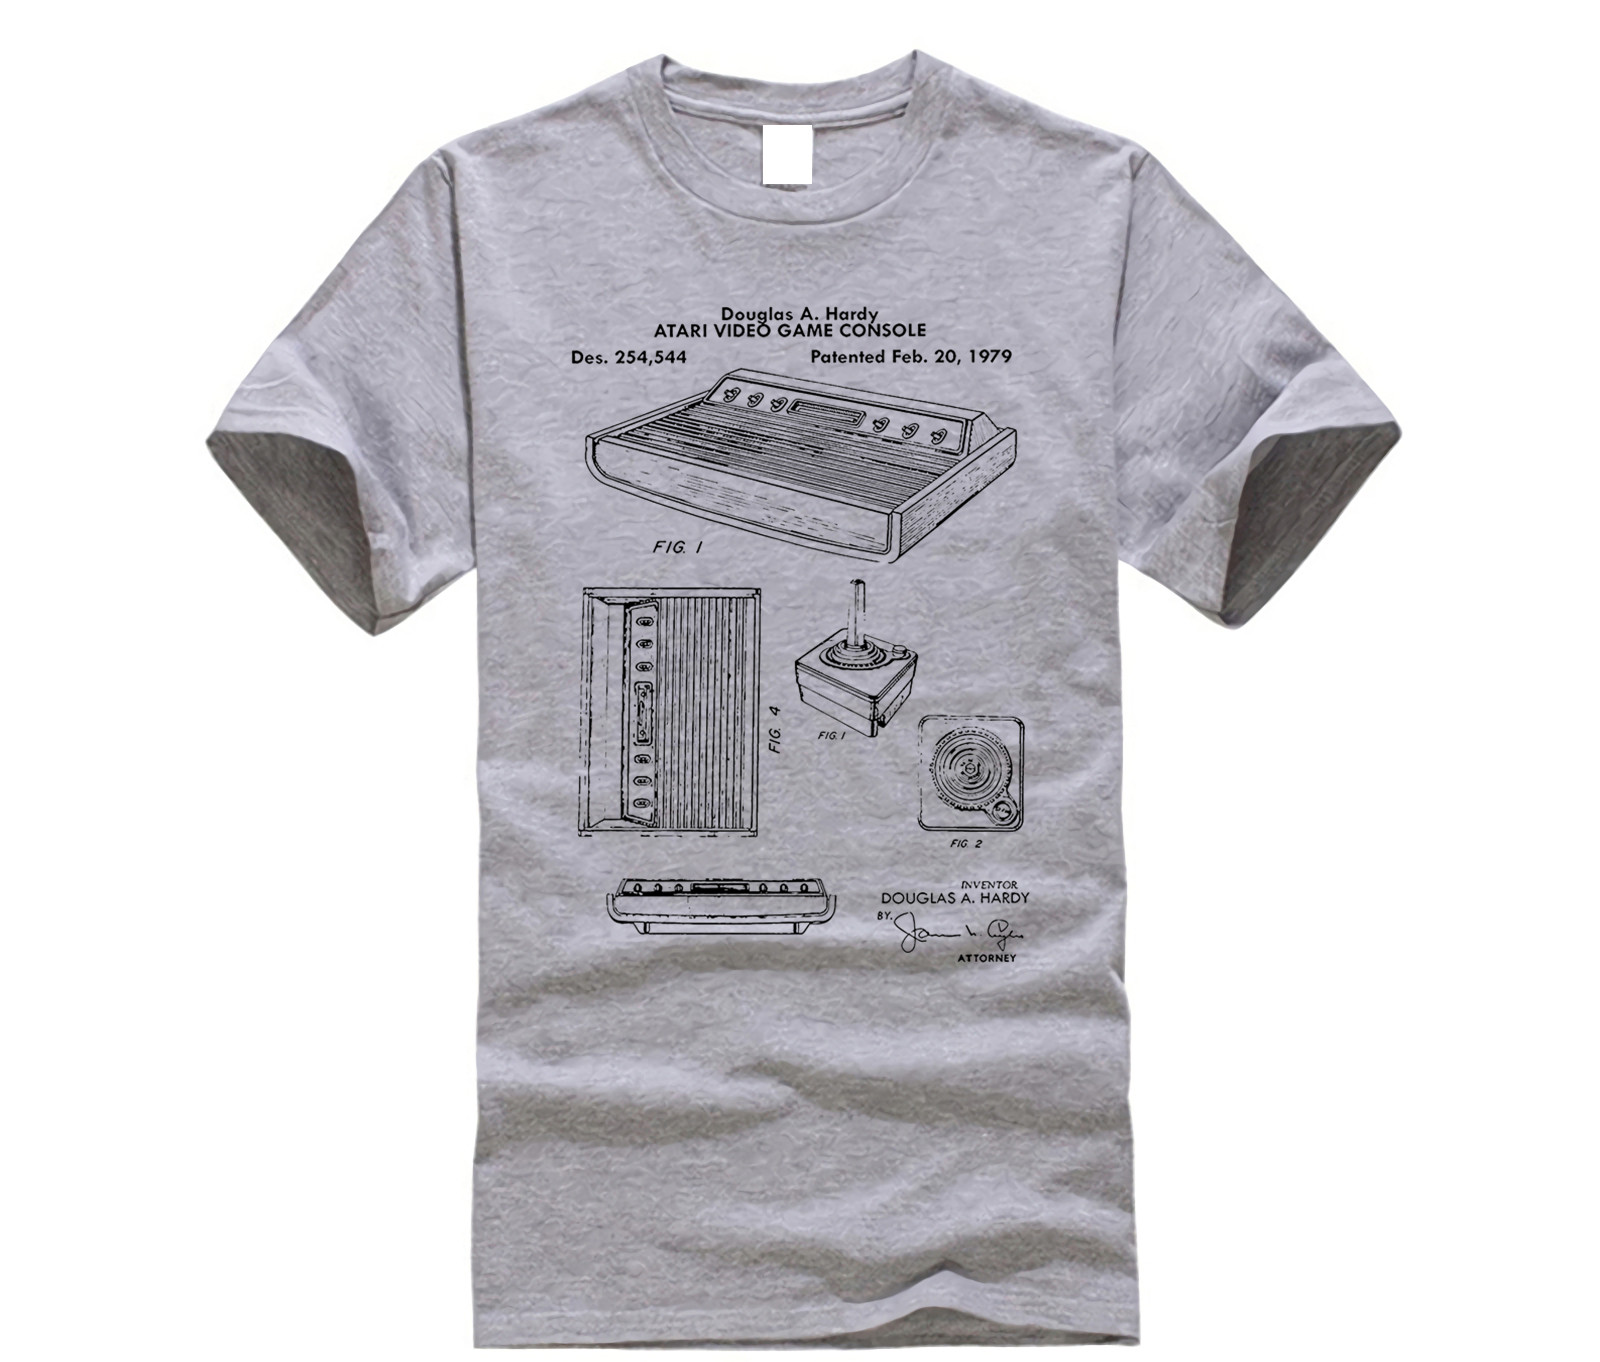 2019 New Cool Tee   Shirt   Atari Original Video Game Console Patent   T  -  Shirt   Tee Fashion Cotton   T  -  shirt